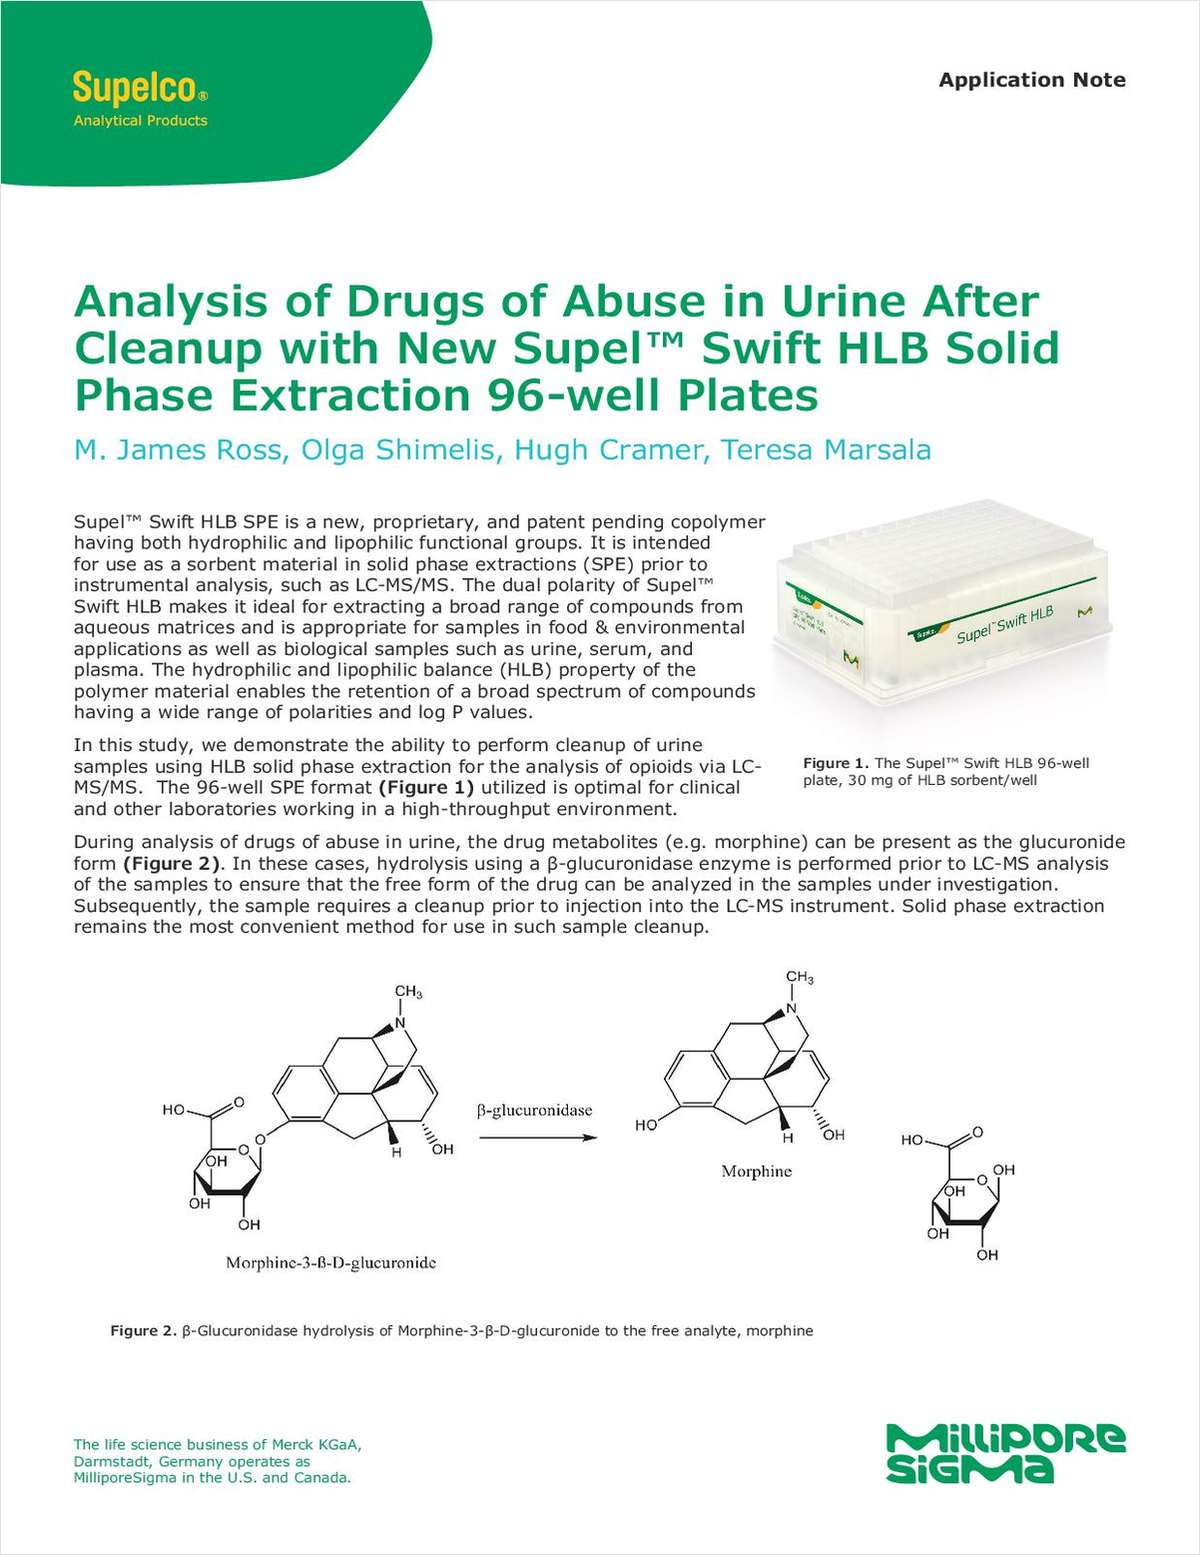 Analysis of Drugs of Abuse in Urine After Cleanup with New Supel Swift HLB Solid Phase Extraction 96-well Plates